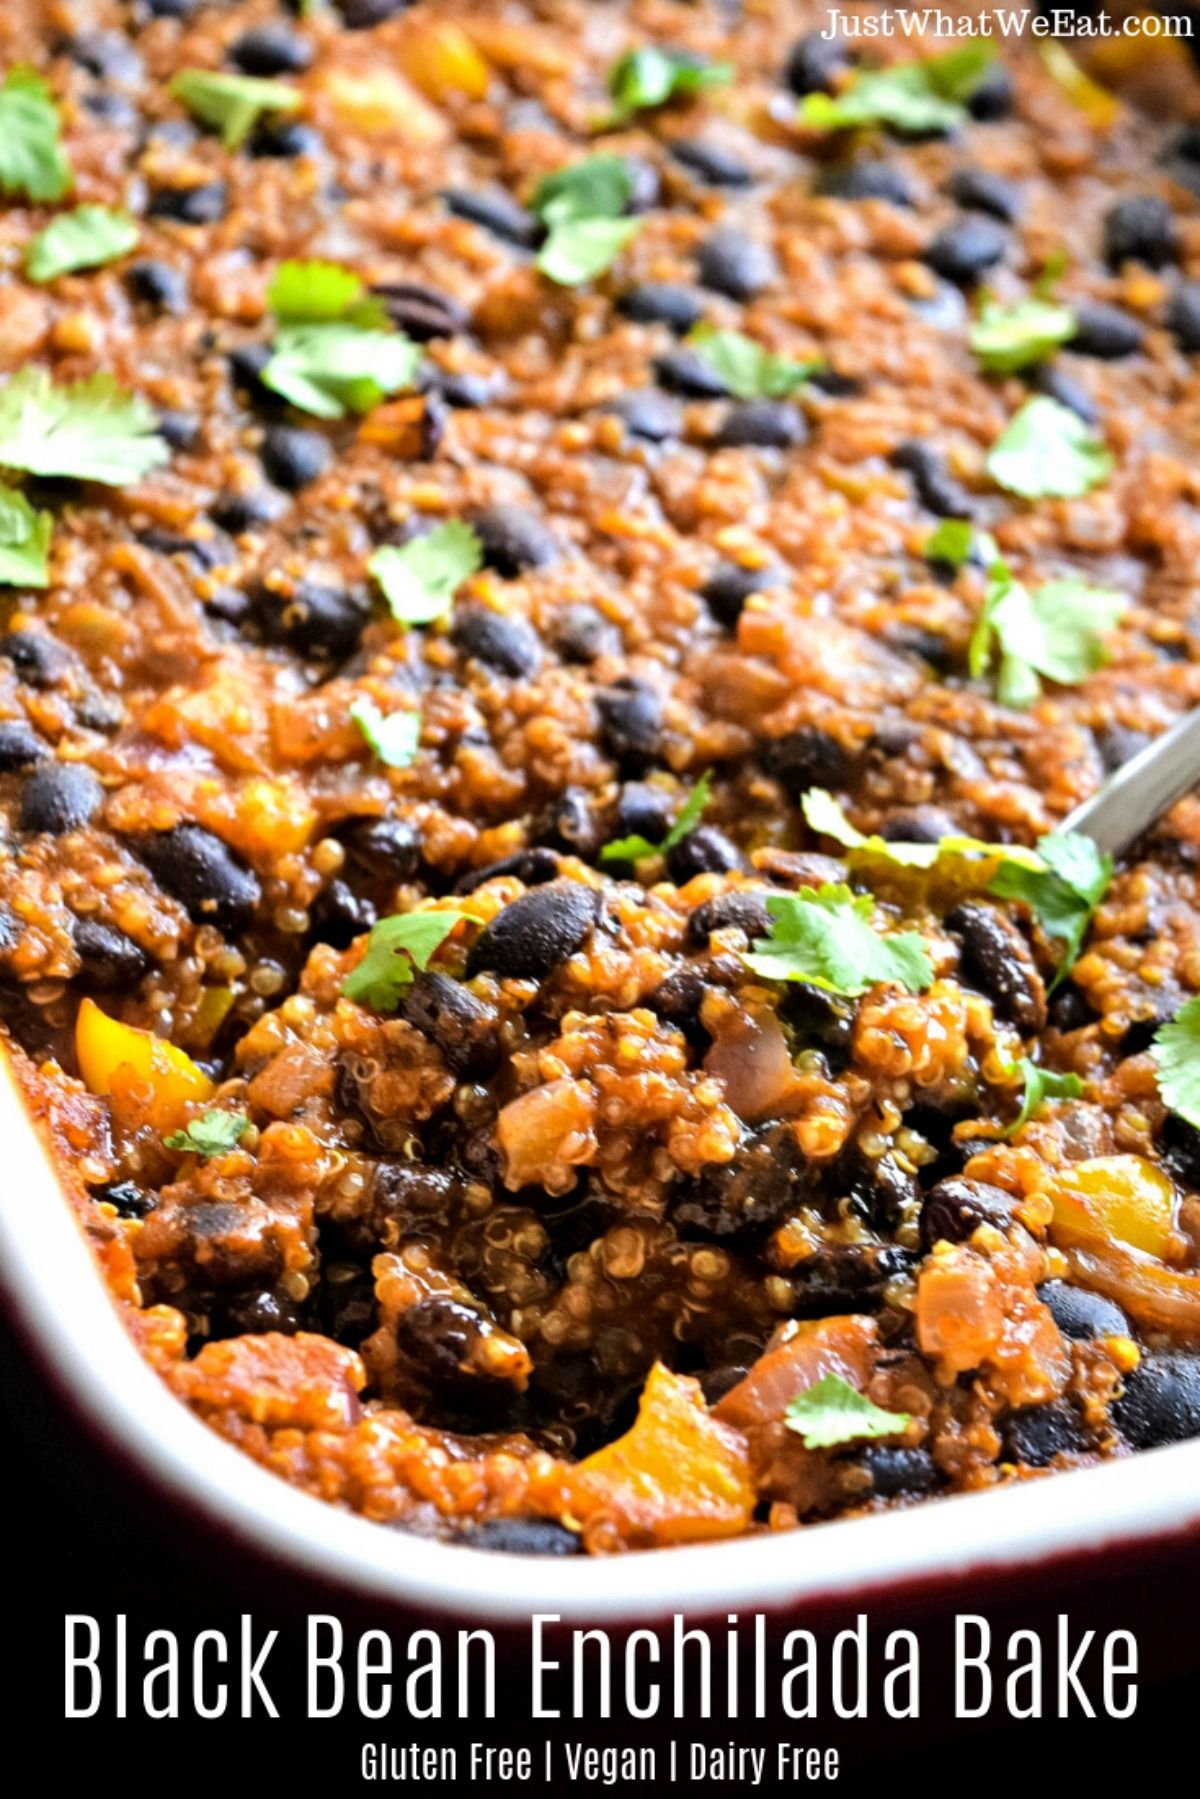 Black Bean Enchilada Bake - Gluten Free & Vegan - Just What We Eat